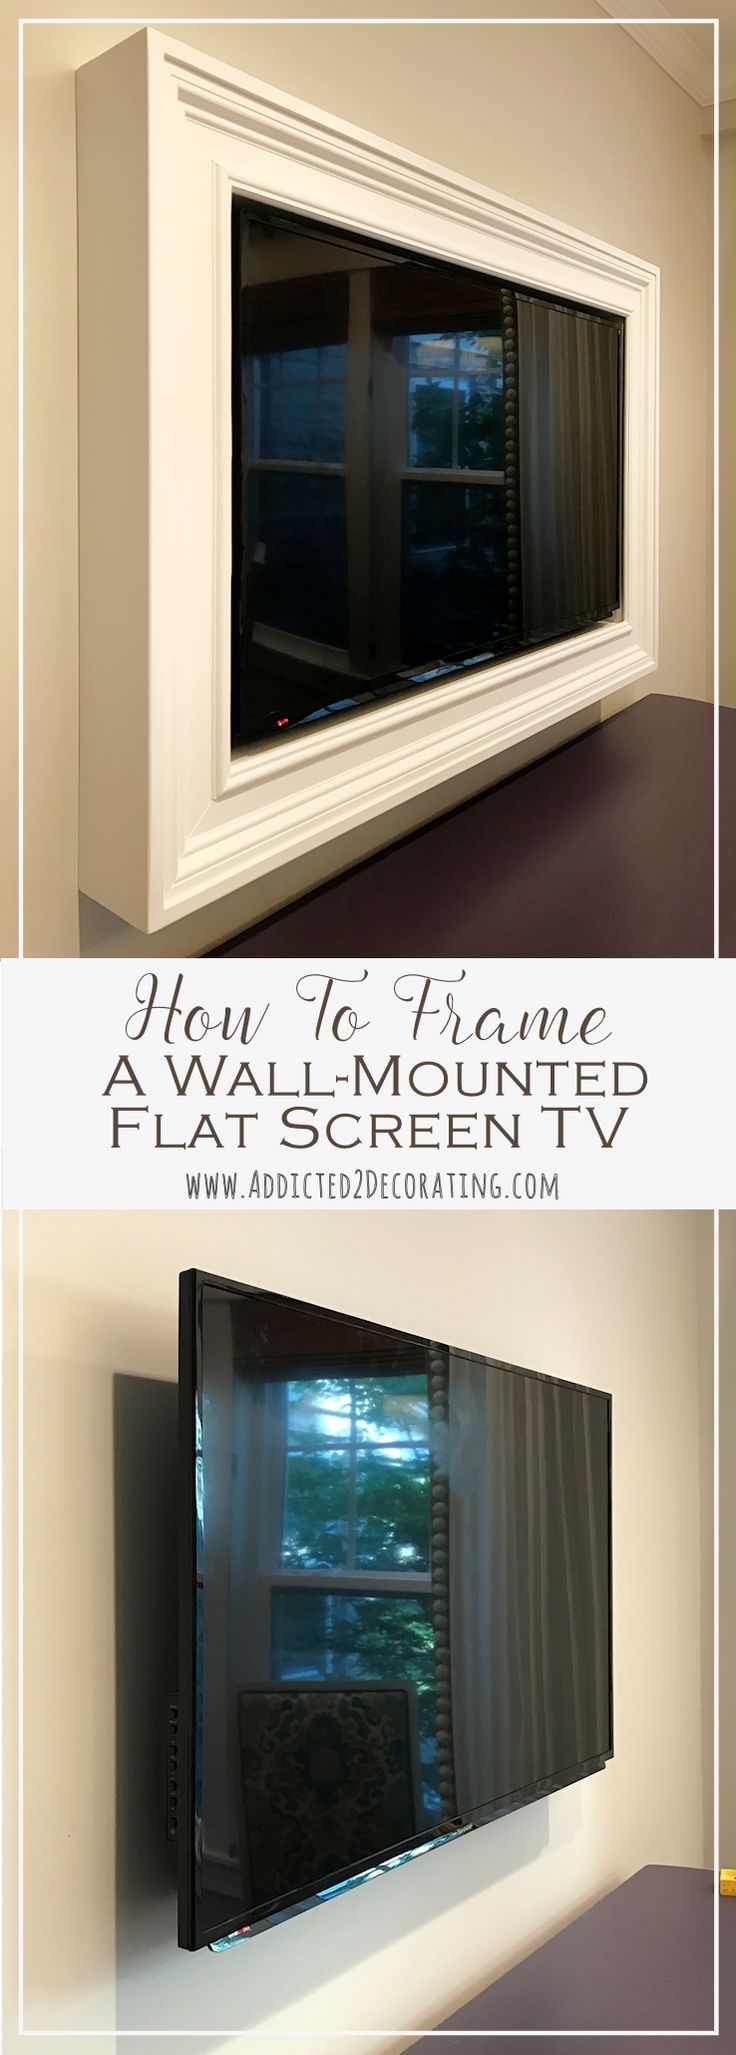 Best 25 tv wall mount ideas on pinterest tv wall mounting custom diy frame for wall mounted tv finished amipublicfo Gallery